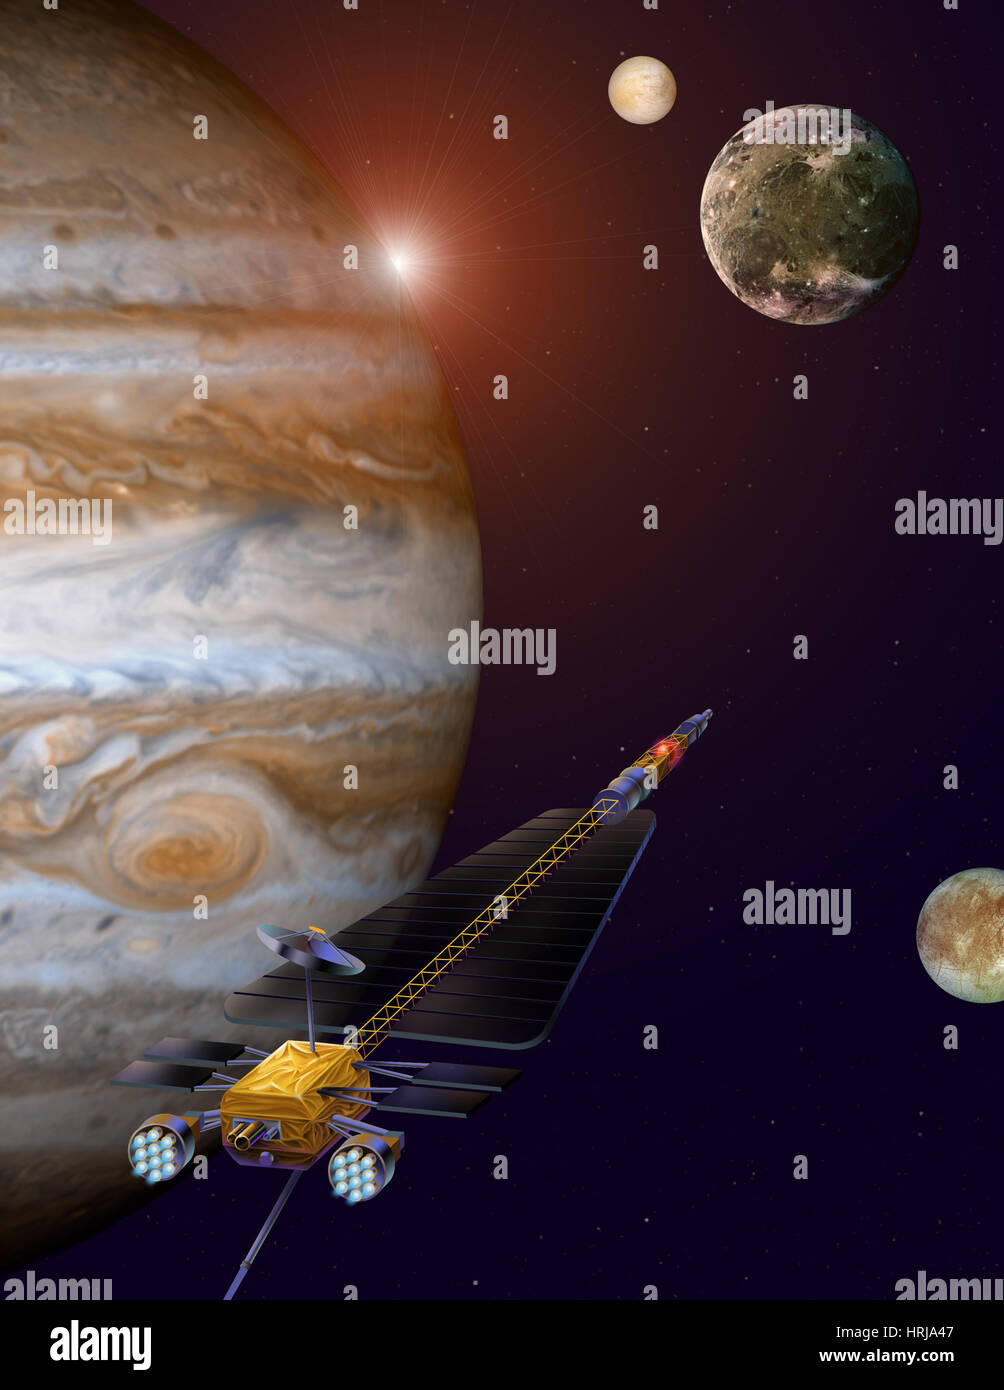 Jupiter icy moons orbiter, Concept de l'artiste Photo Stock